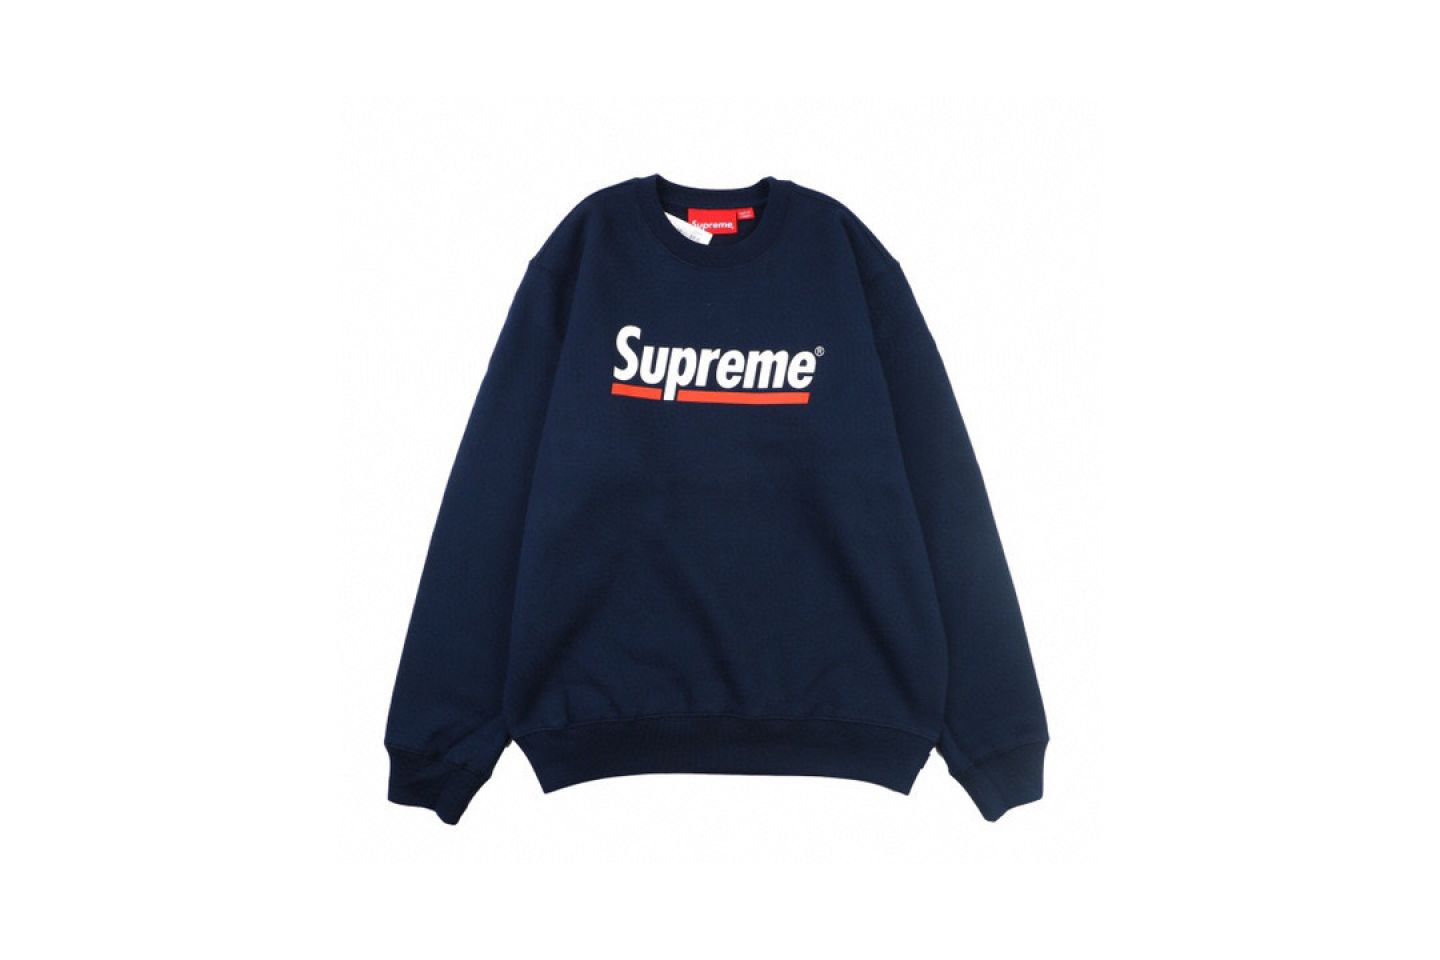 "Shirt Supreme crew neck sweatshirt with underlined logo ""Navy Blue"" 1 supreme_crew_neck_sweatshirt_with_underlined_logo_navy_blue_1"